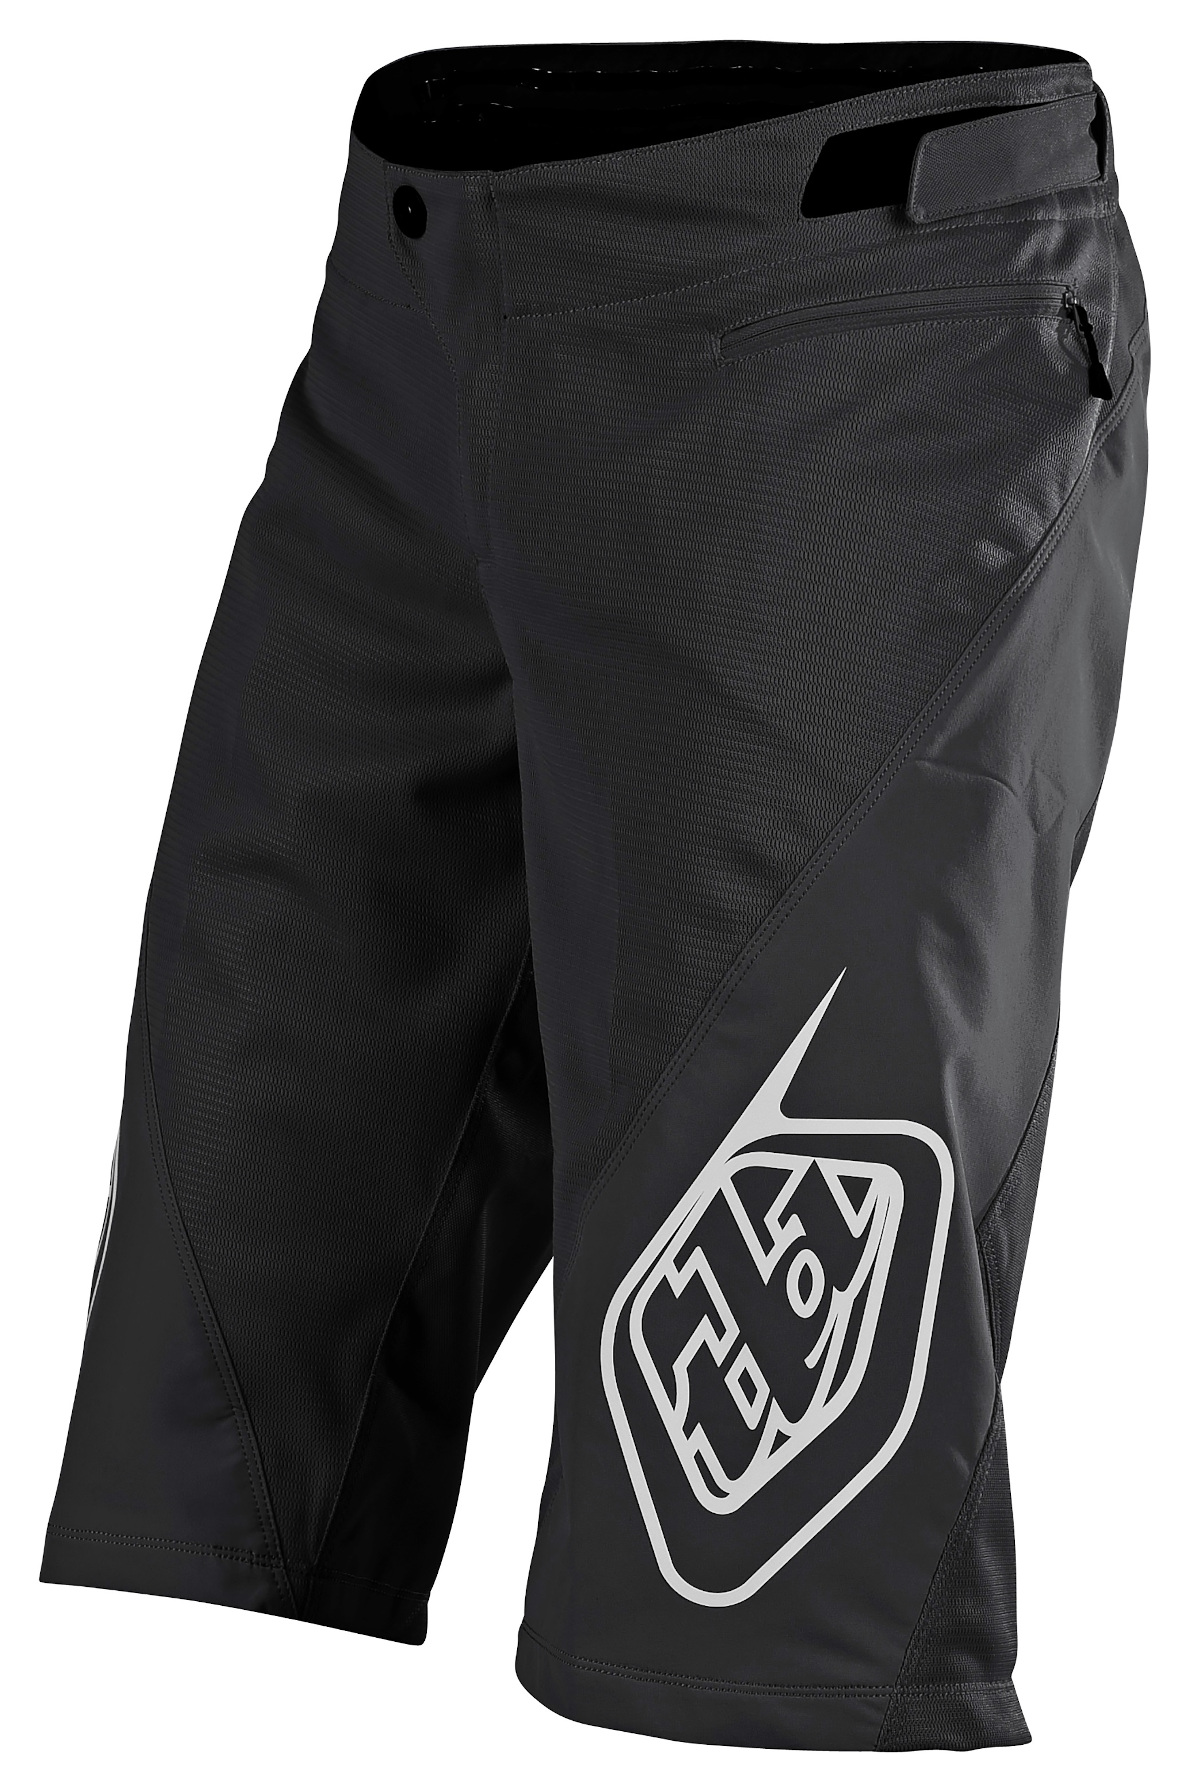 Troy Lee Designs Sprint Youth Shorts Black